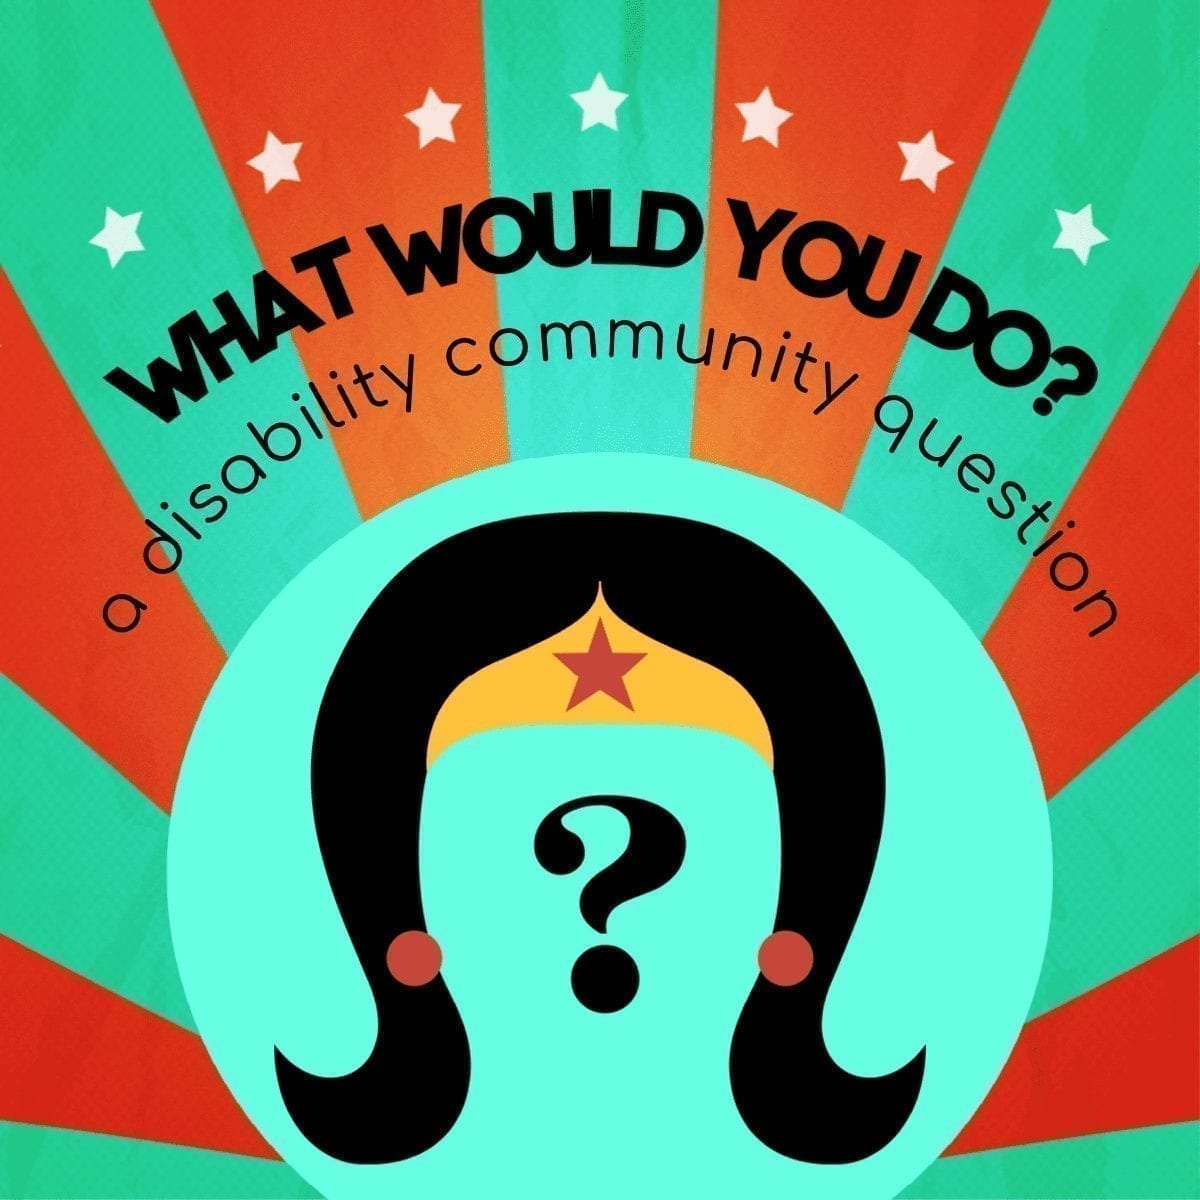 """""""Help! My Son Keeps Eloping!"""" What Would You Do? A Community Disability Question"""